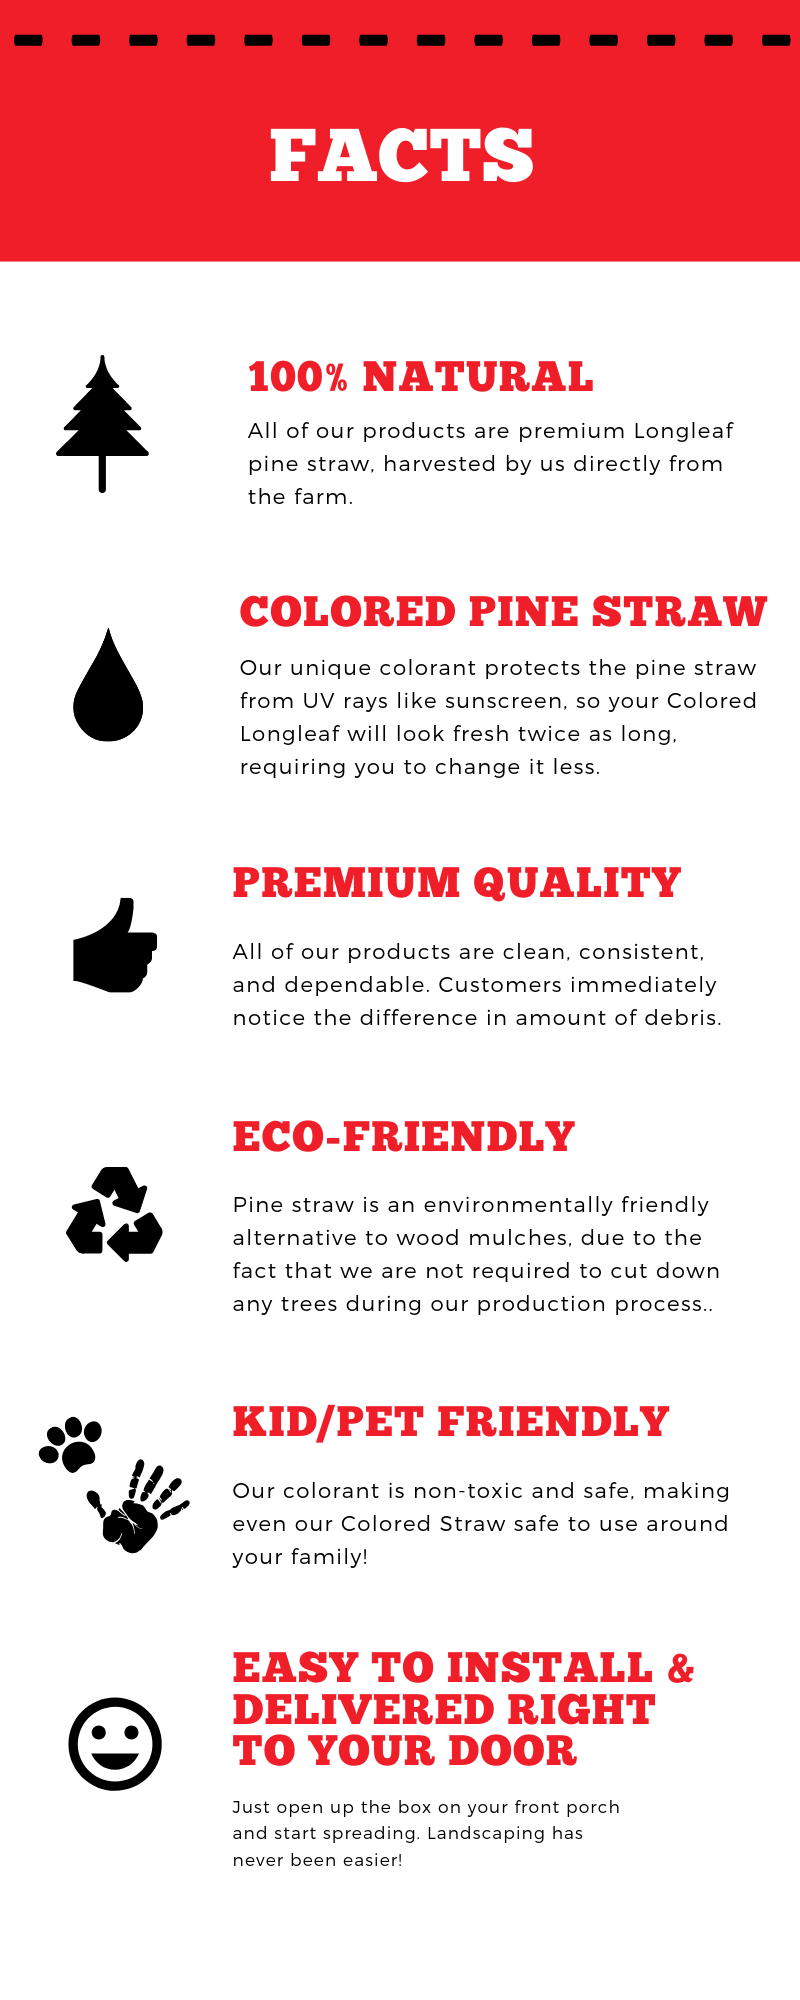 Colored Pine Straw Facts